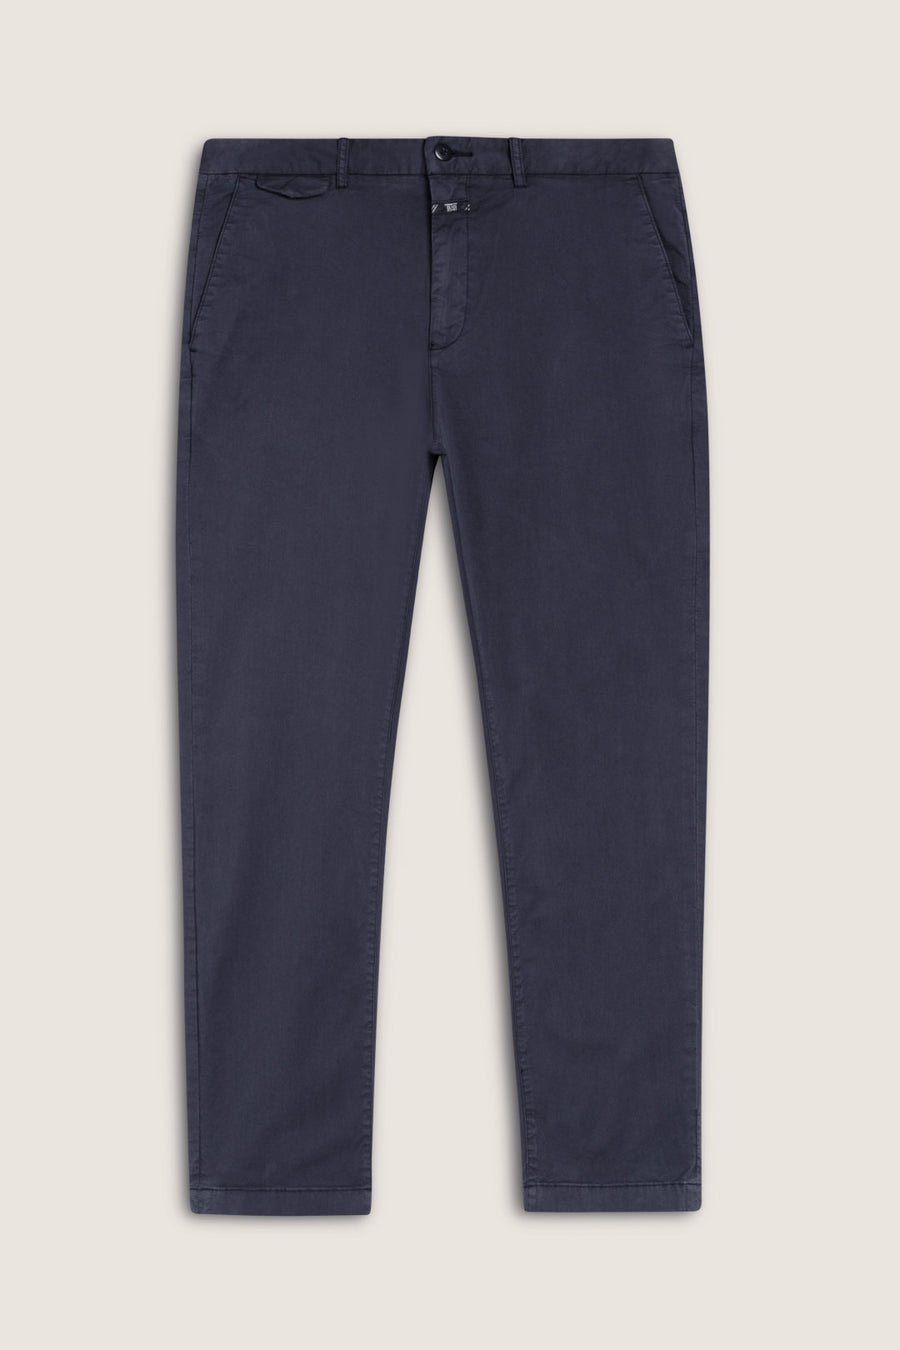 Atelier Cropped Chino - Navy - Pavilion